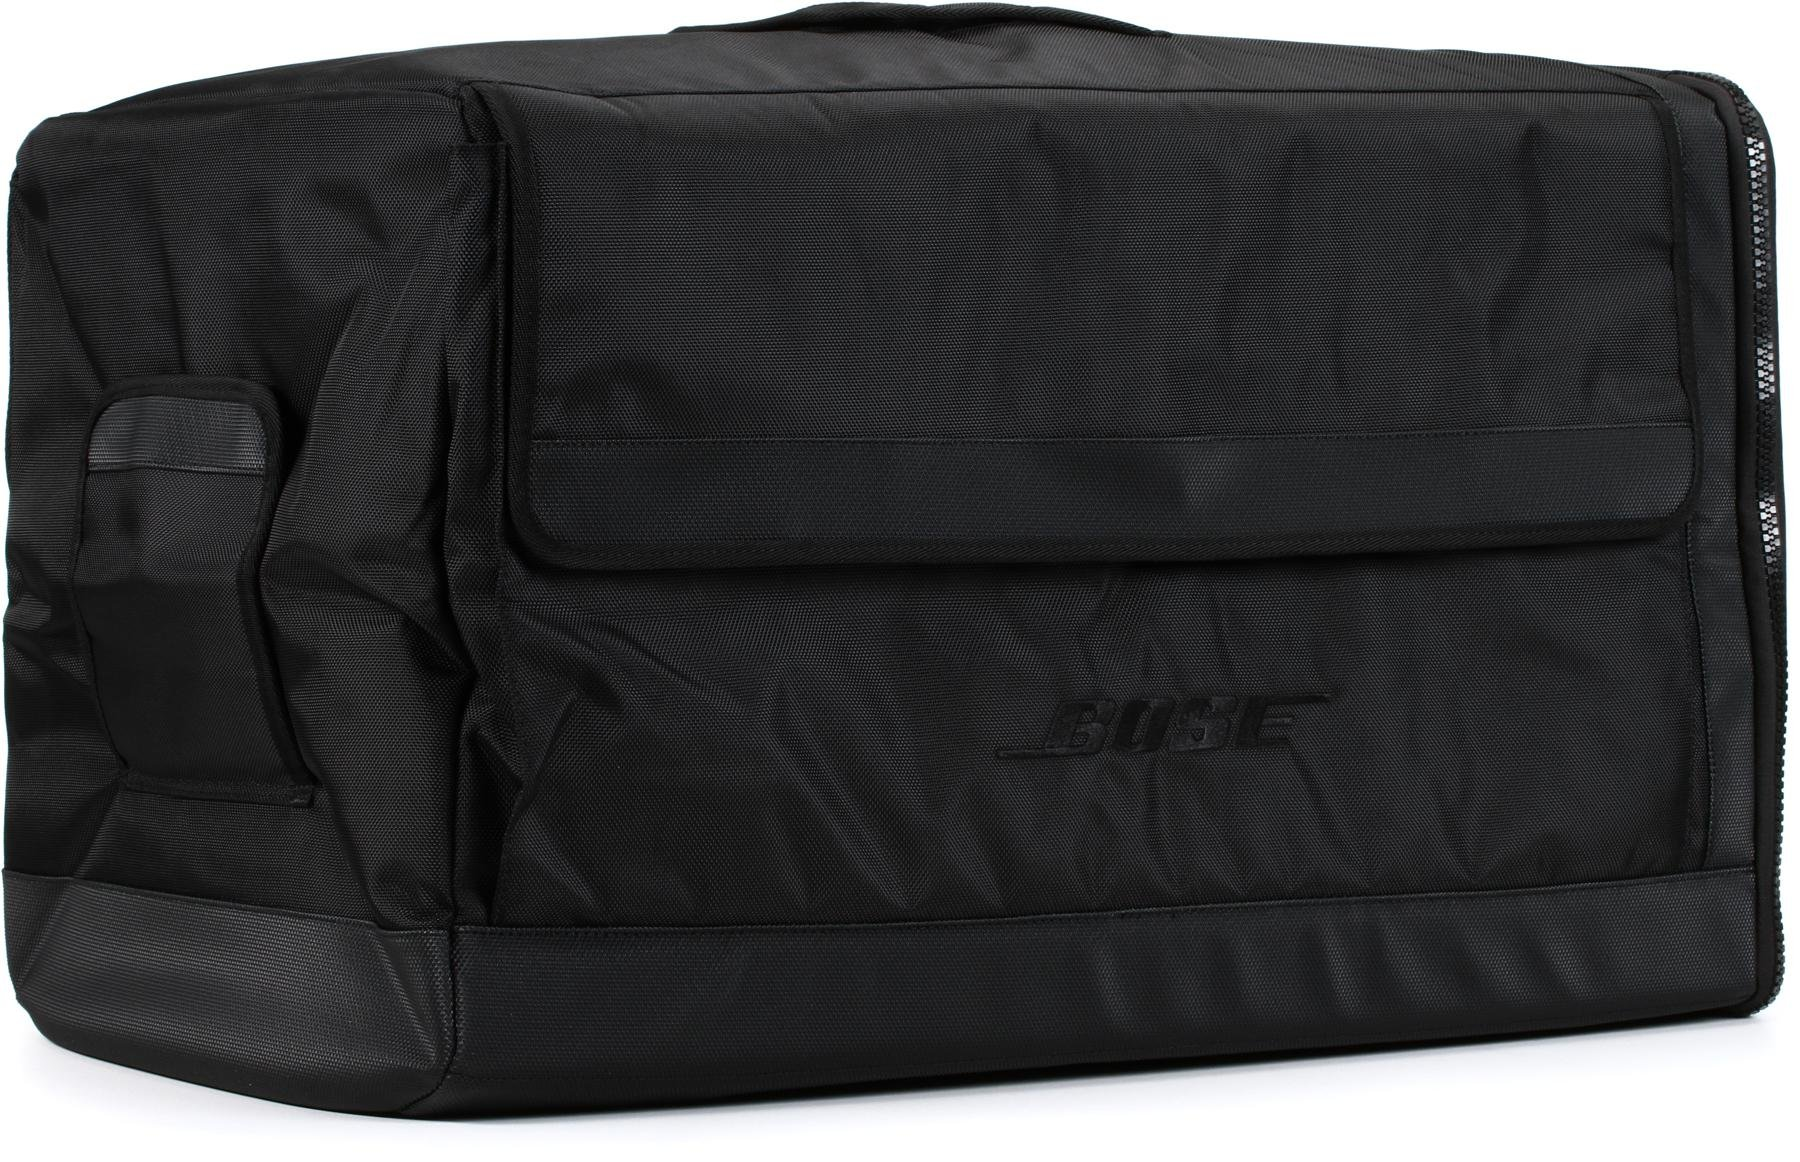 Bose F1 Subwoofer Travel Bag | Sweetwater